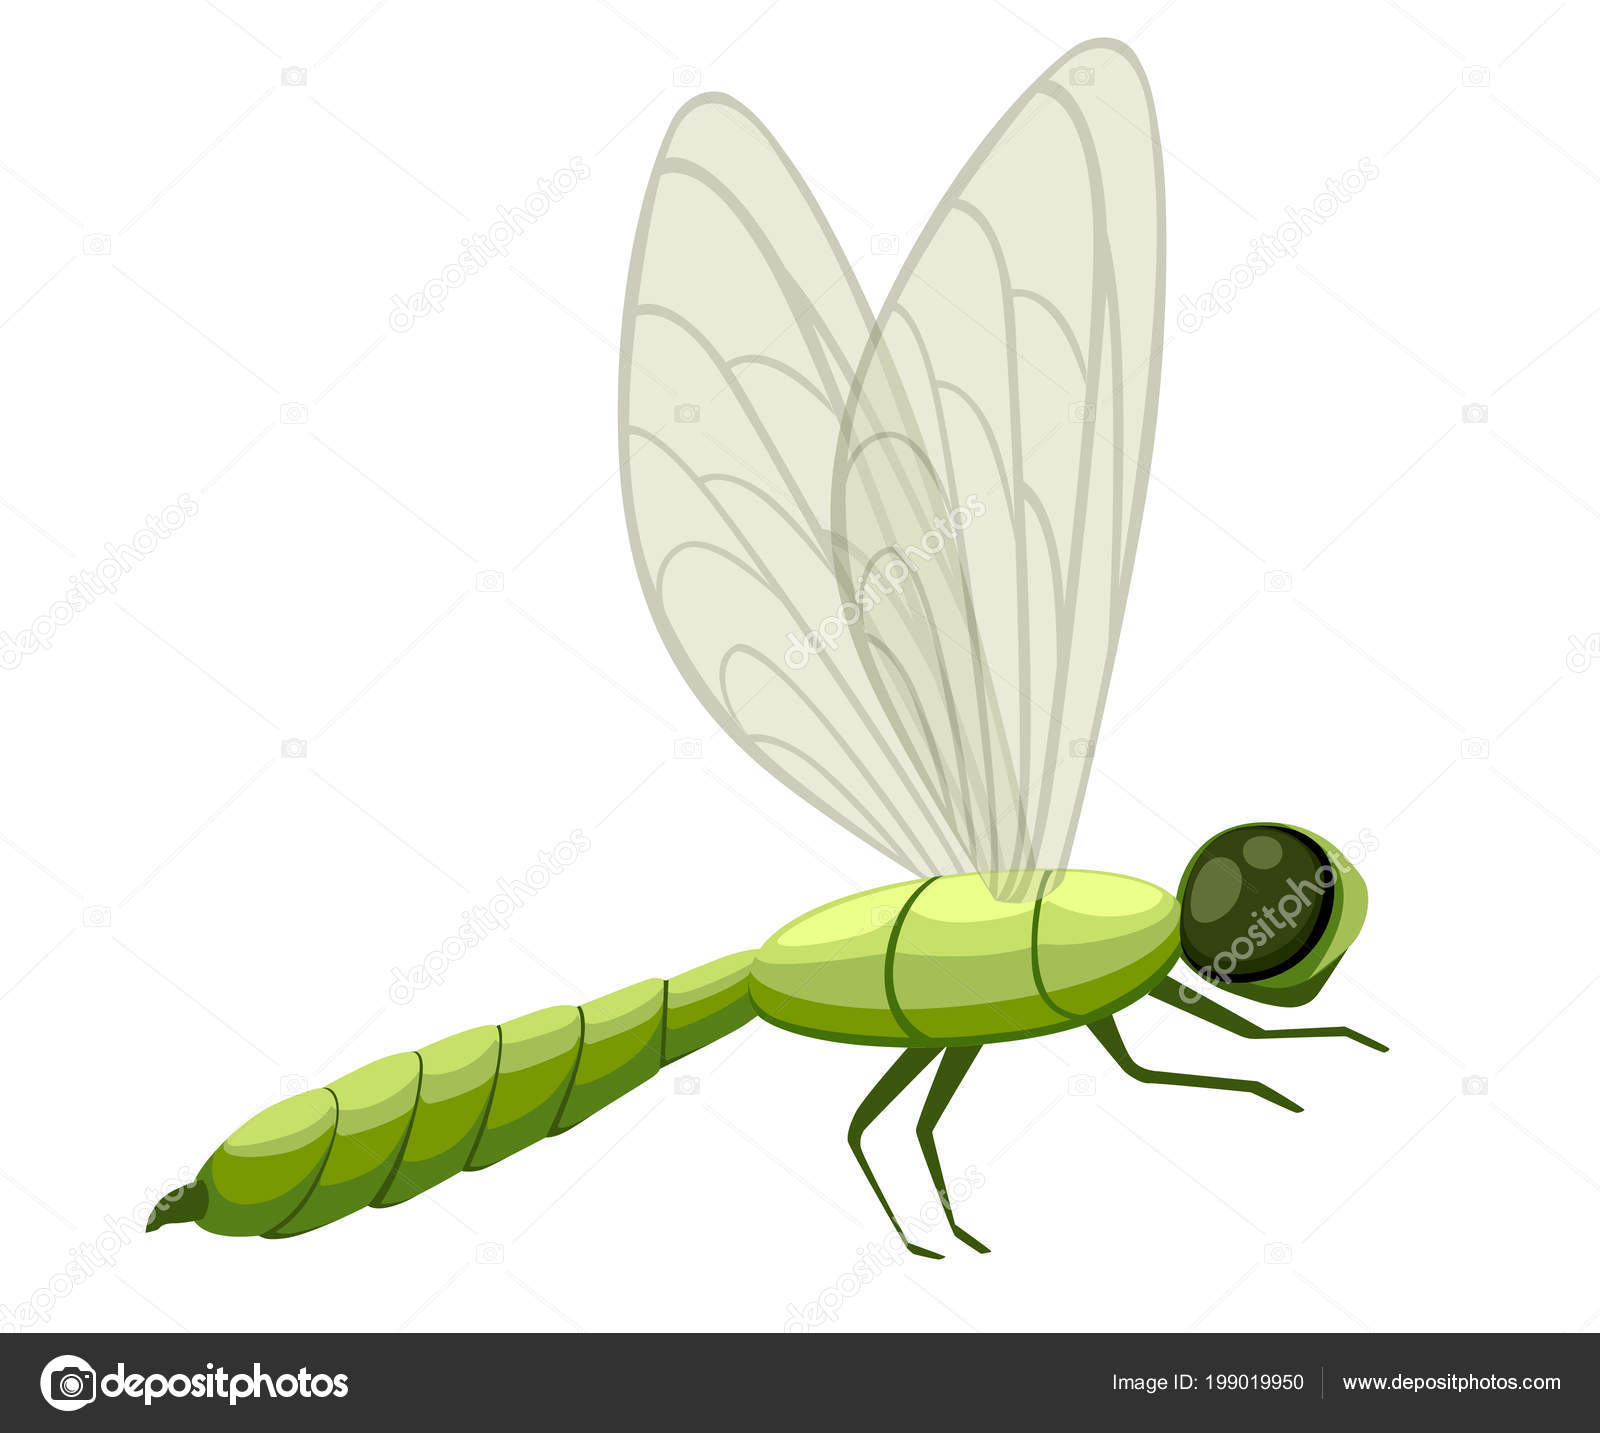 Green Cartoon Dragonfly Illustration Fly Insect Wildlife Object Flat